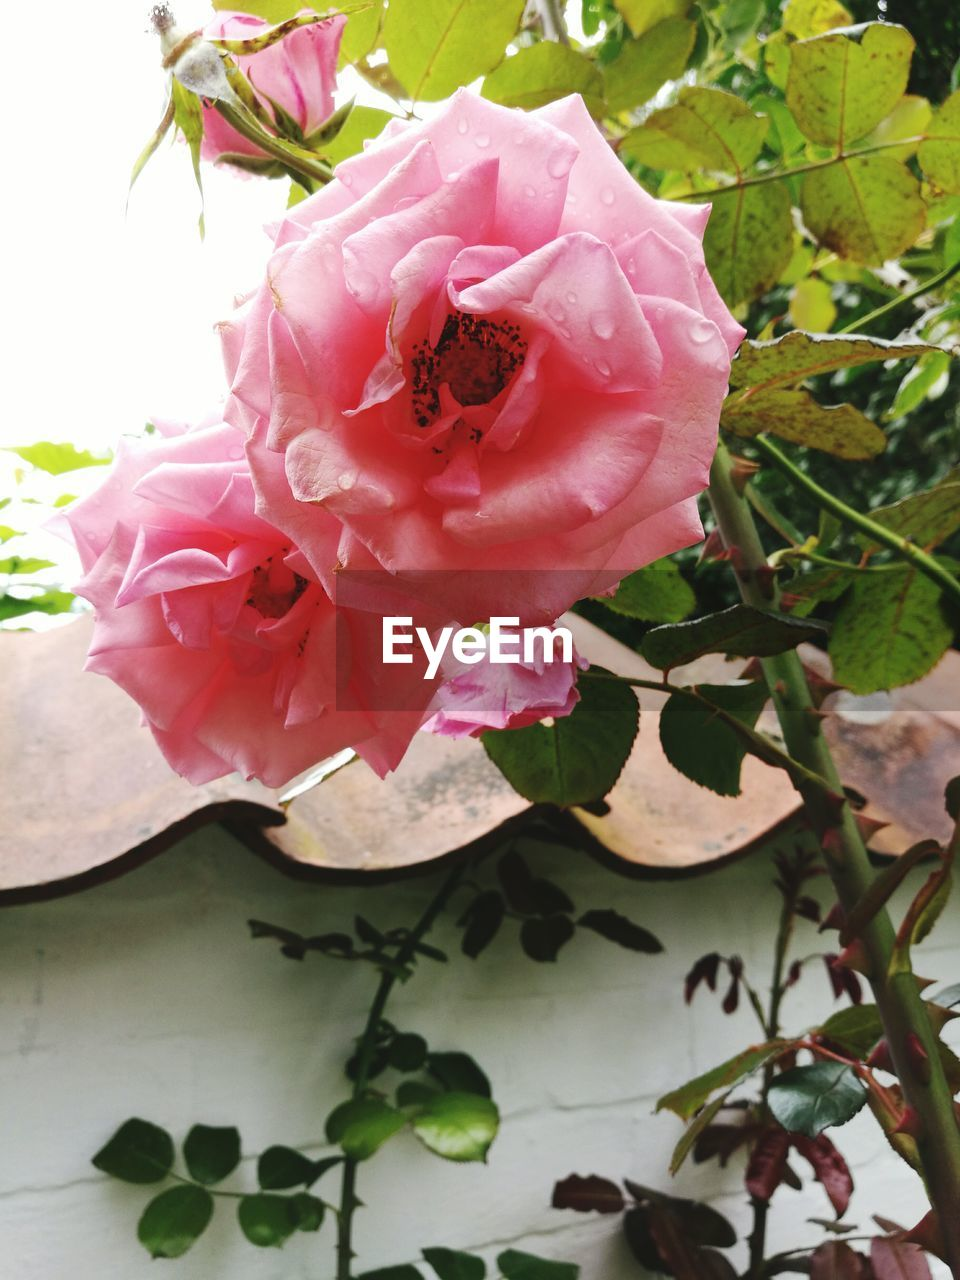 flower, petal, rose - flower, pink color, nature, no people, plant, day, growth, outdoors, fragility, beauty in nature, wild rose, flower head, close-up, freshness